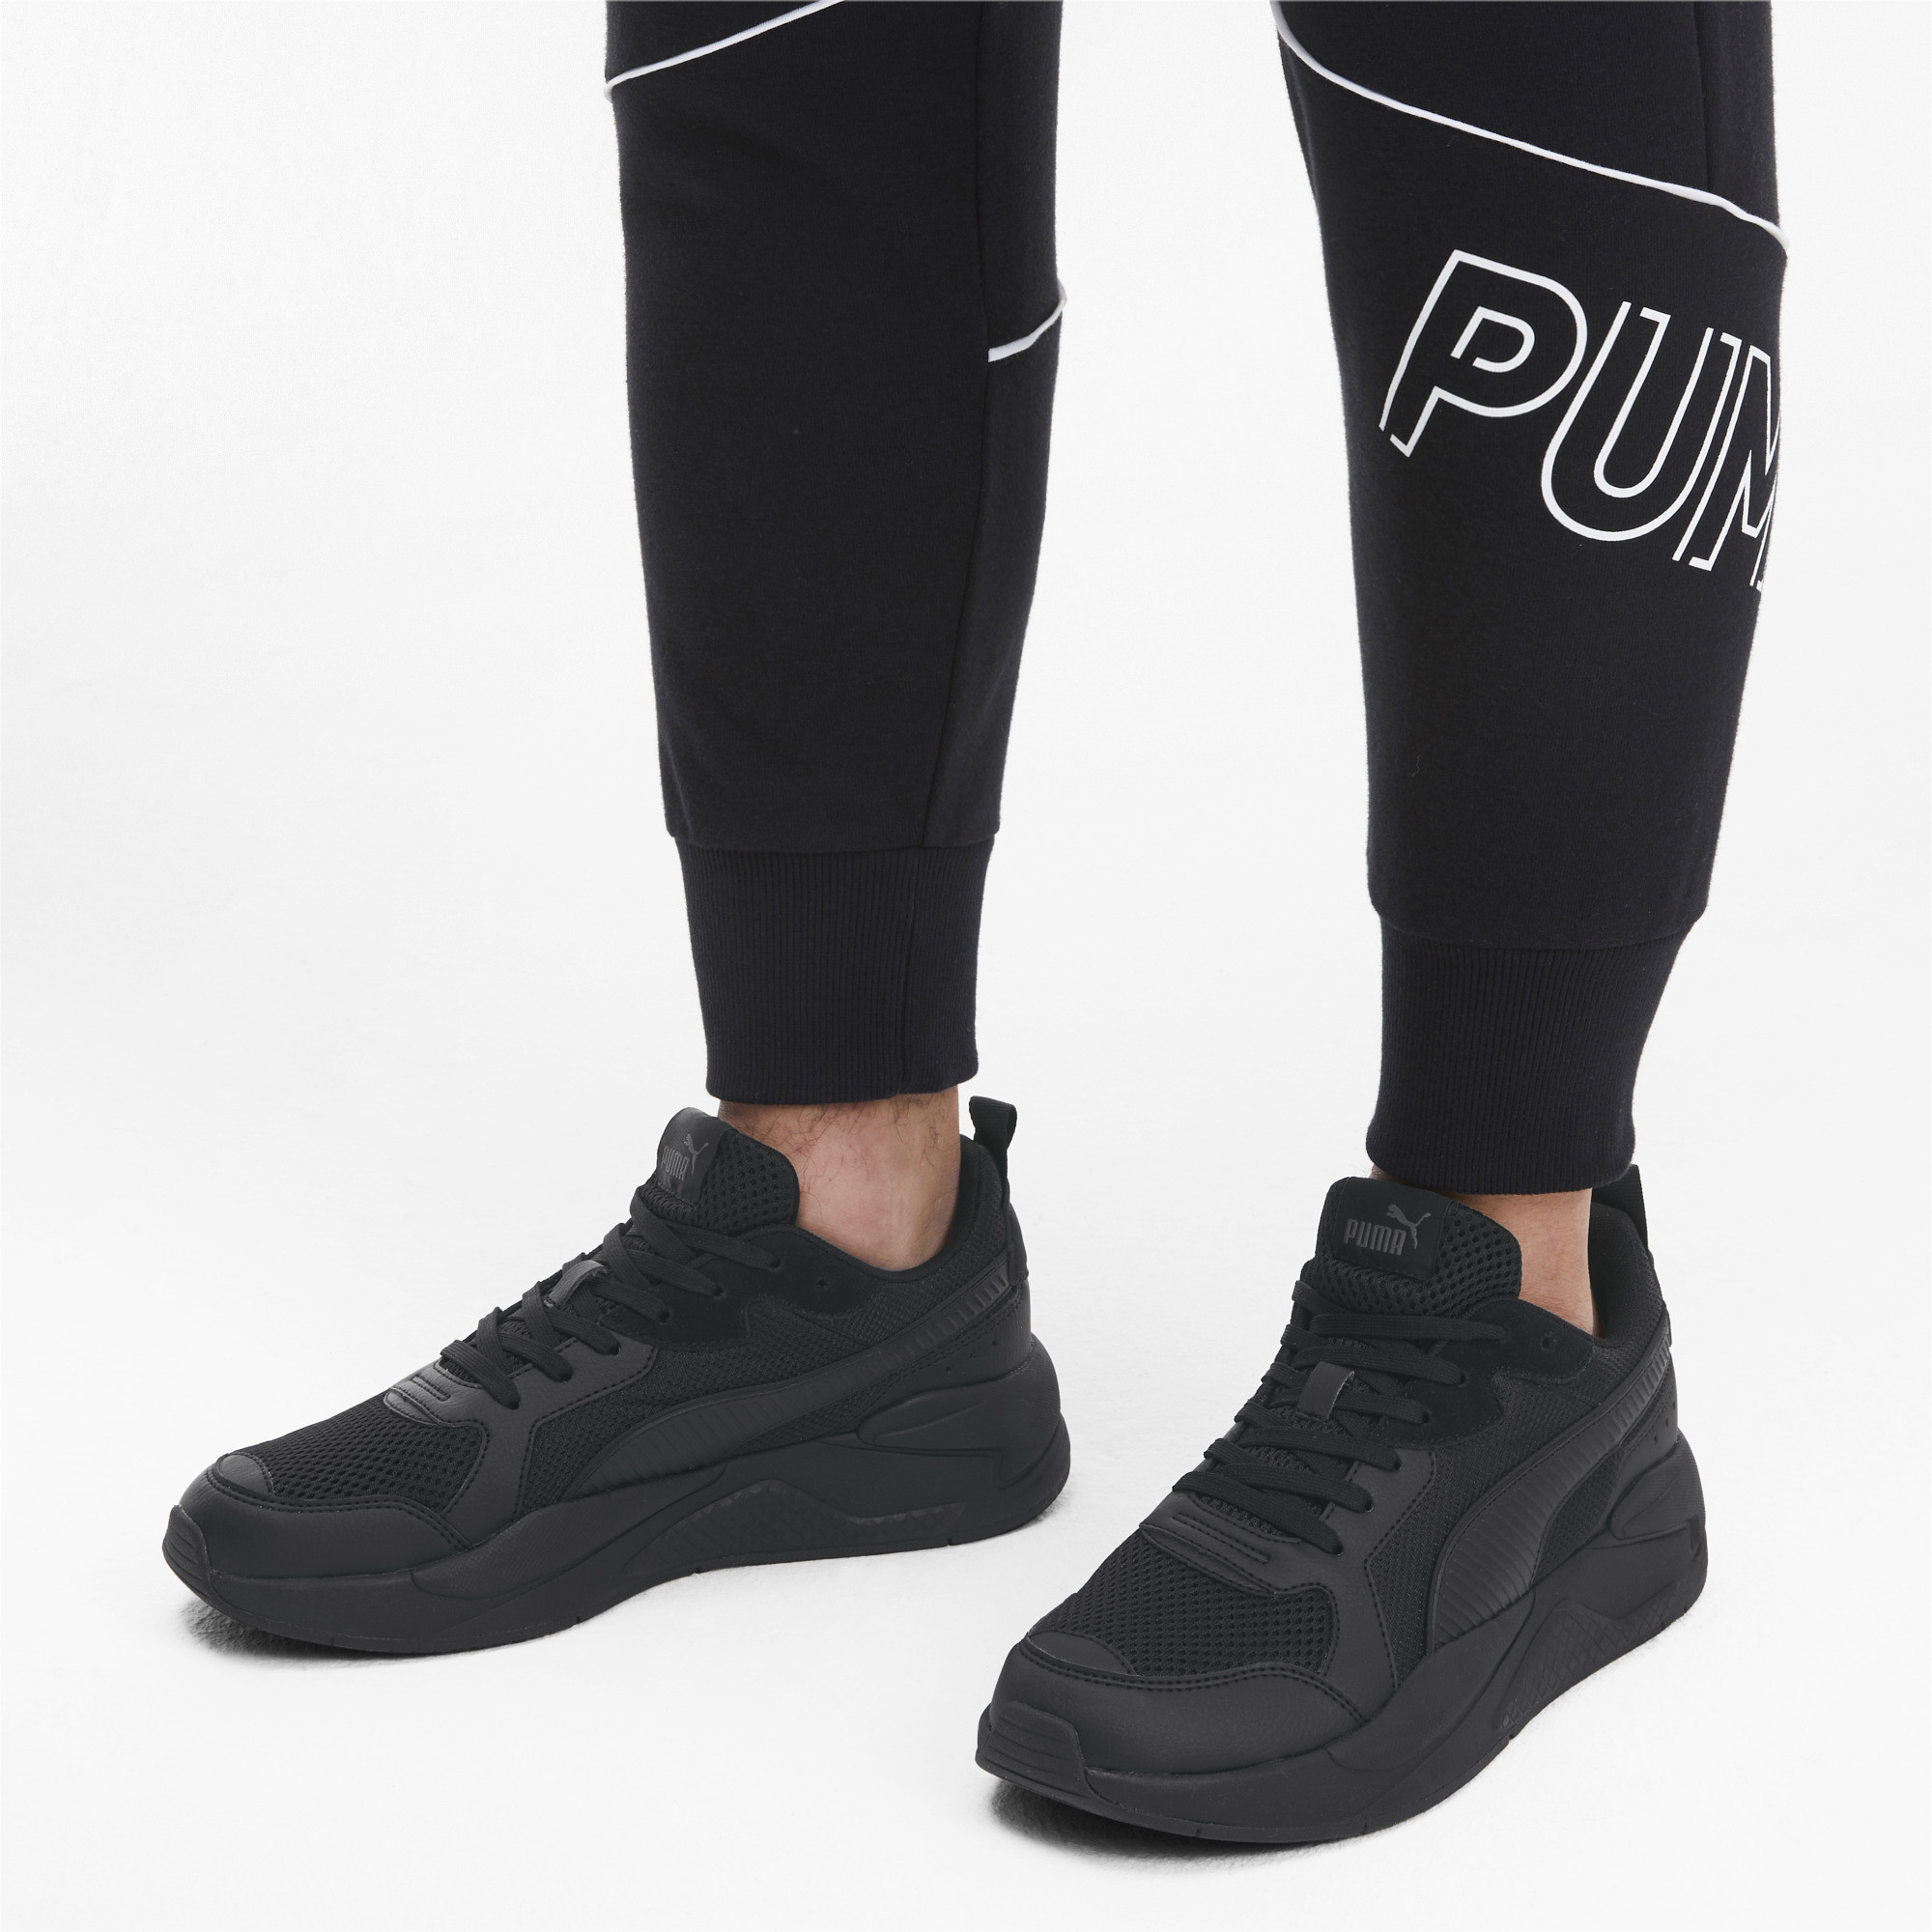 PUMA-Men-039-s-X-RAY-Sneakers thumbnail 15